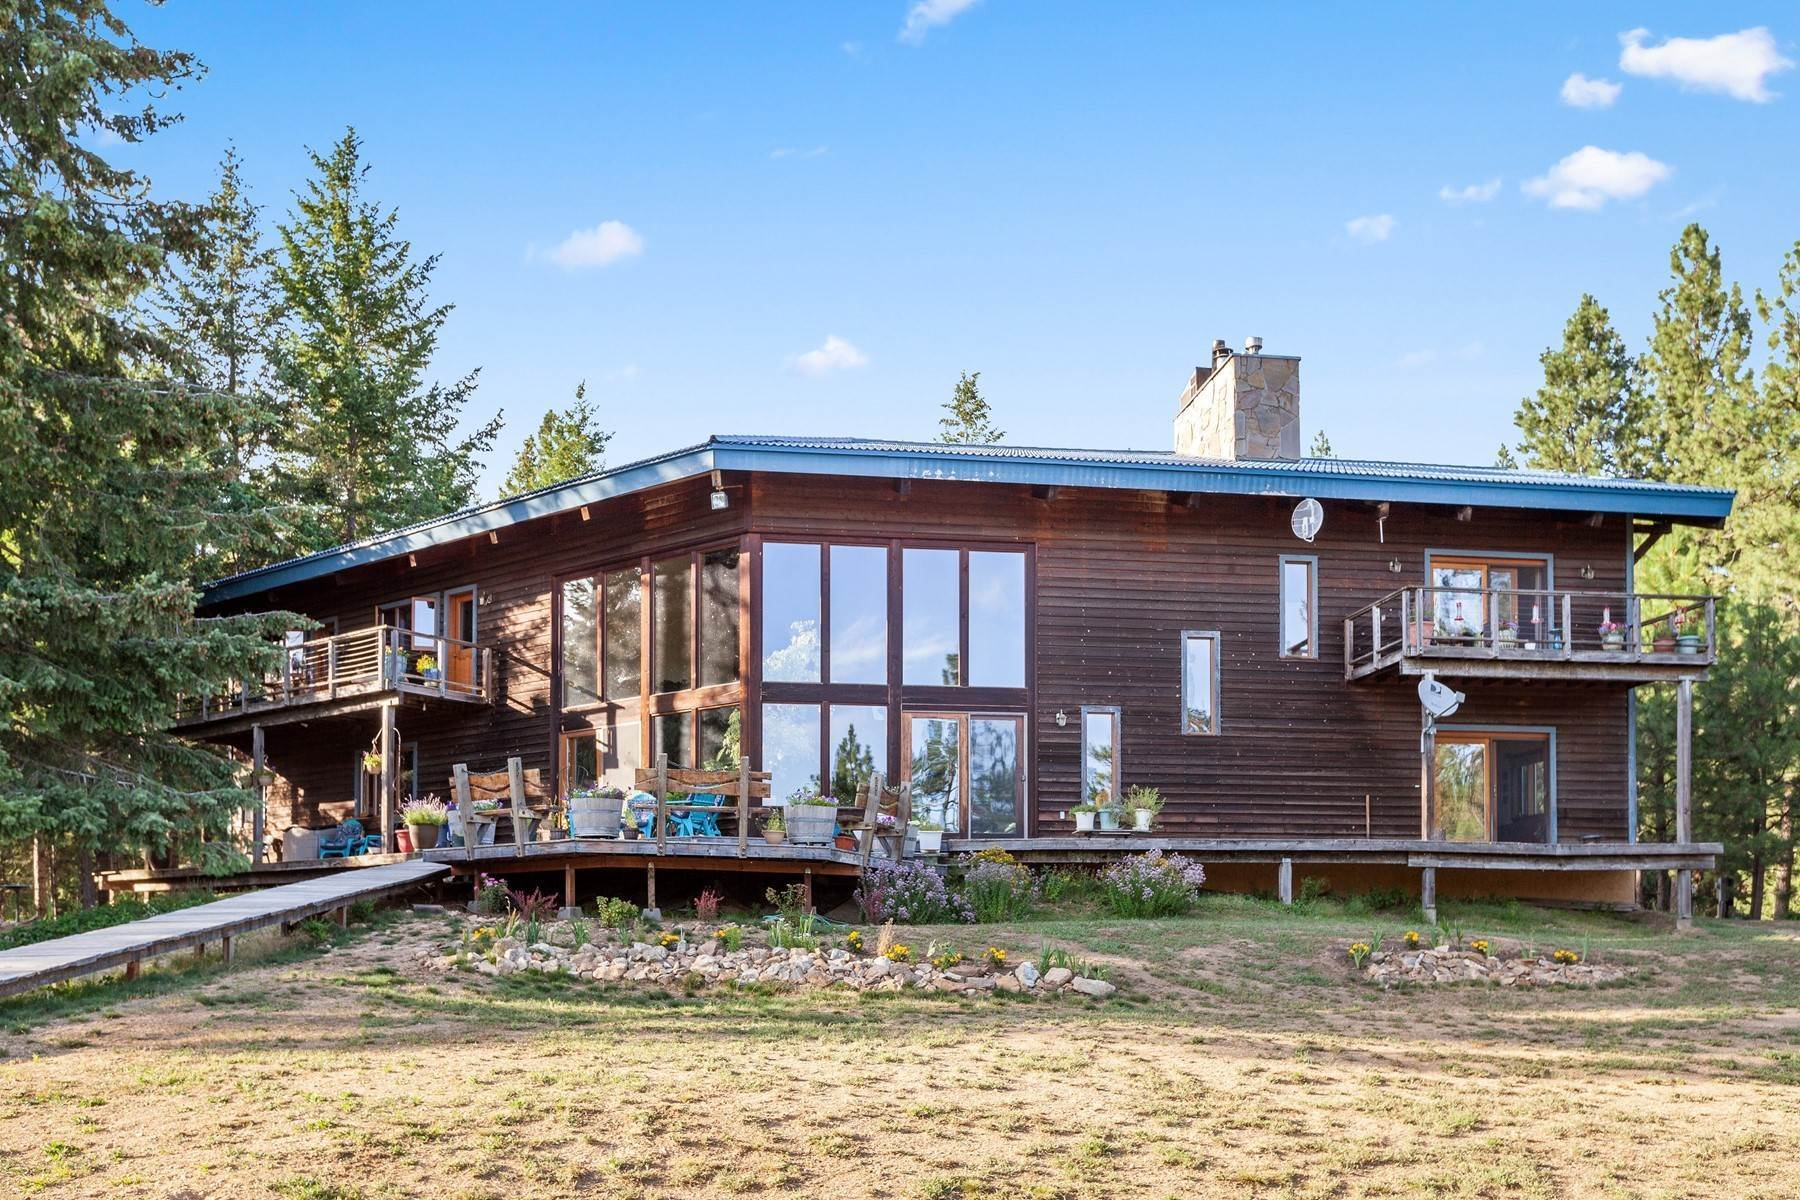 Single Family Homes for Sale at Extraordinary Mountain Modern home 20505 E Morris Ln, Otis Orchards, Washington, 99027 United States